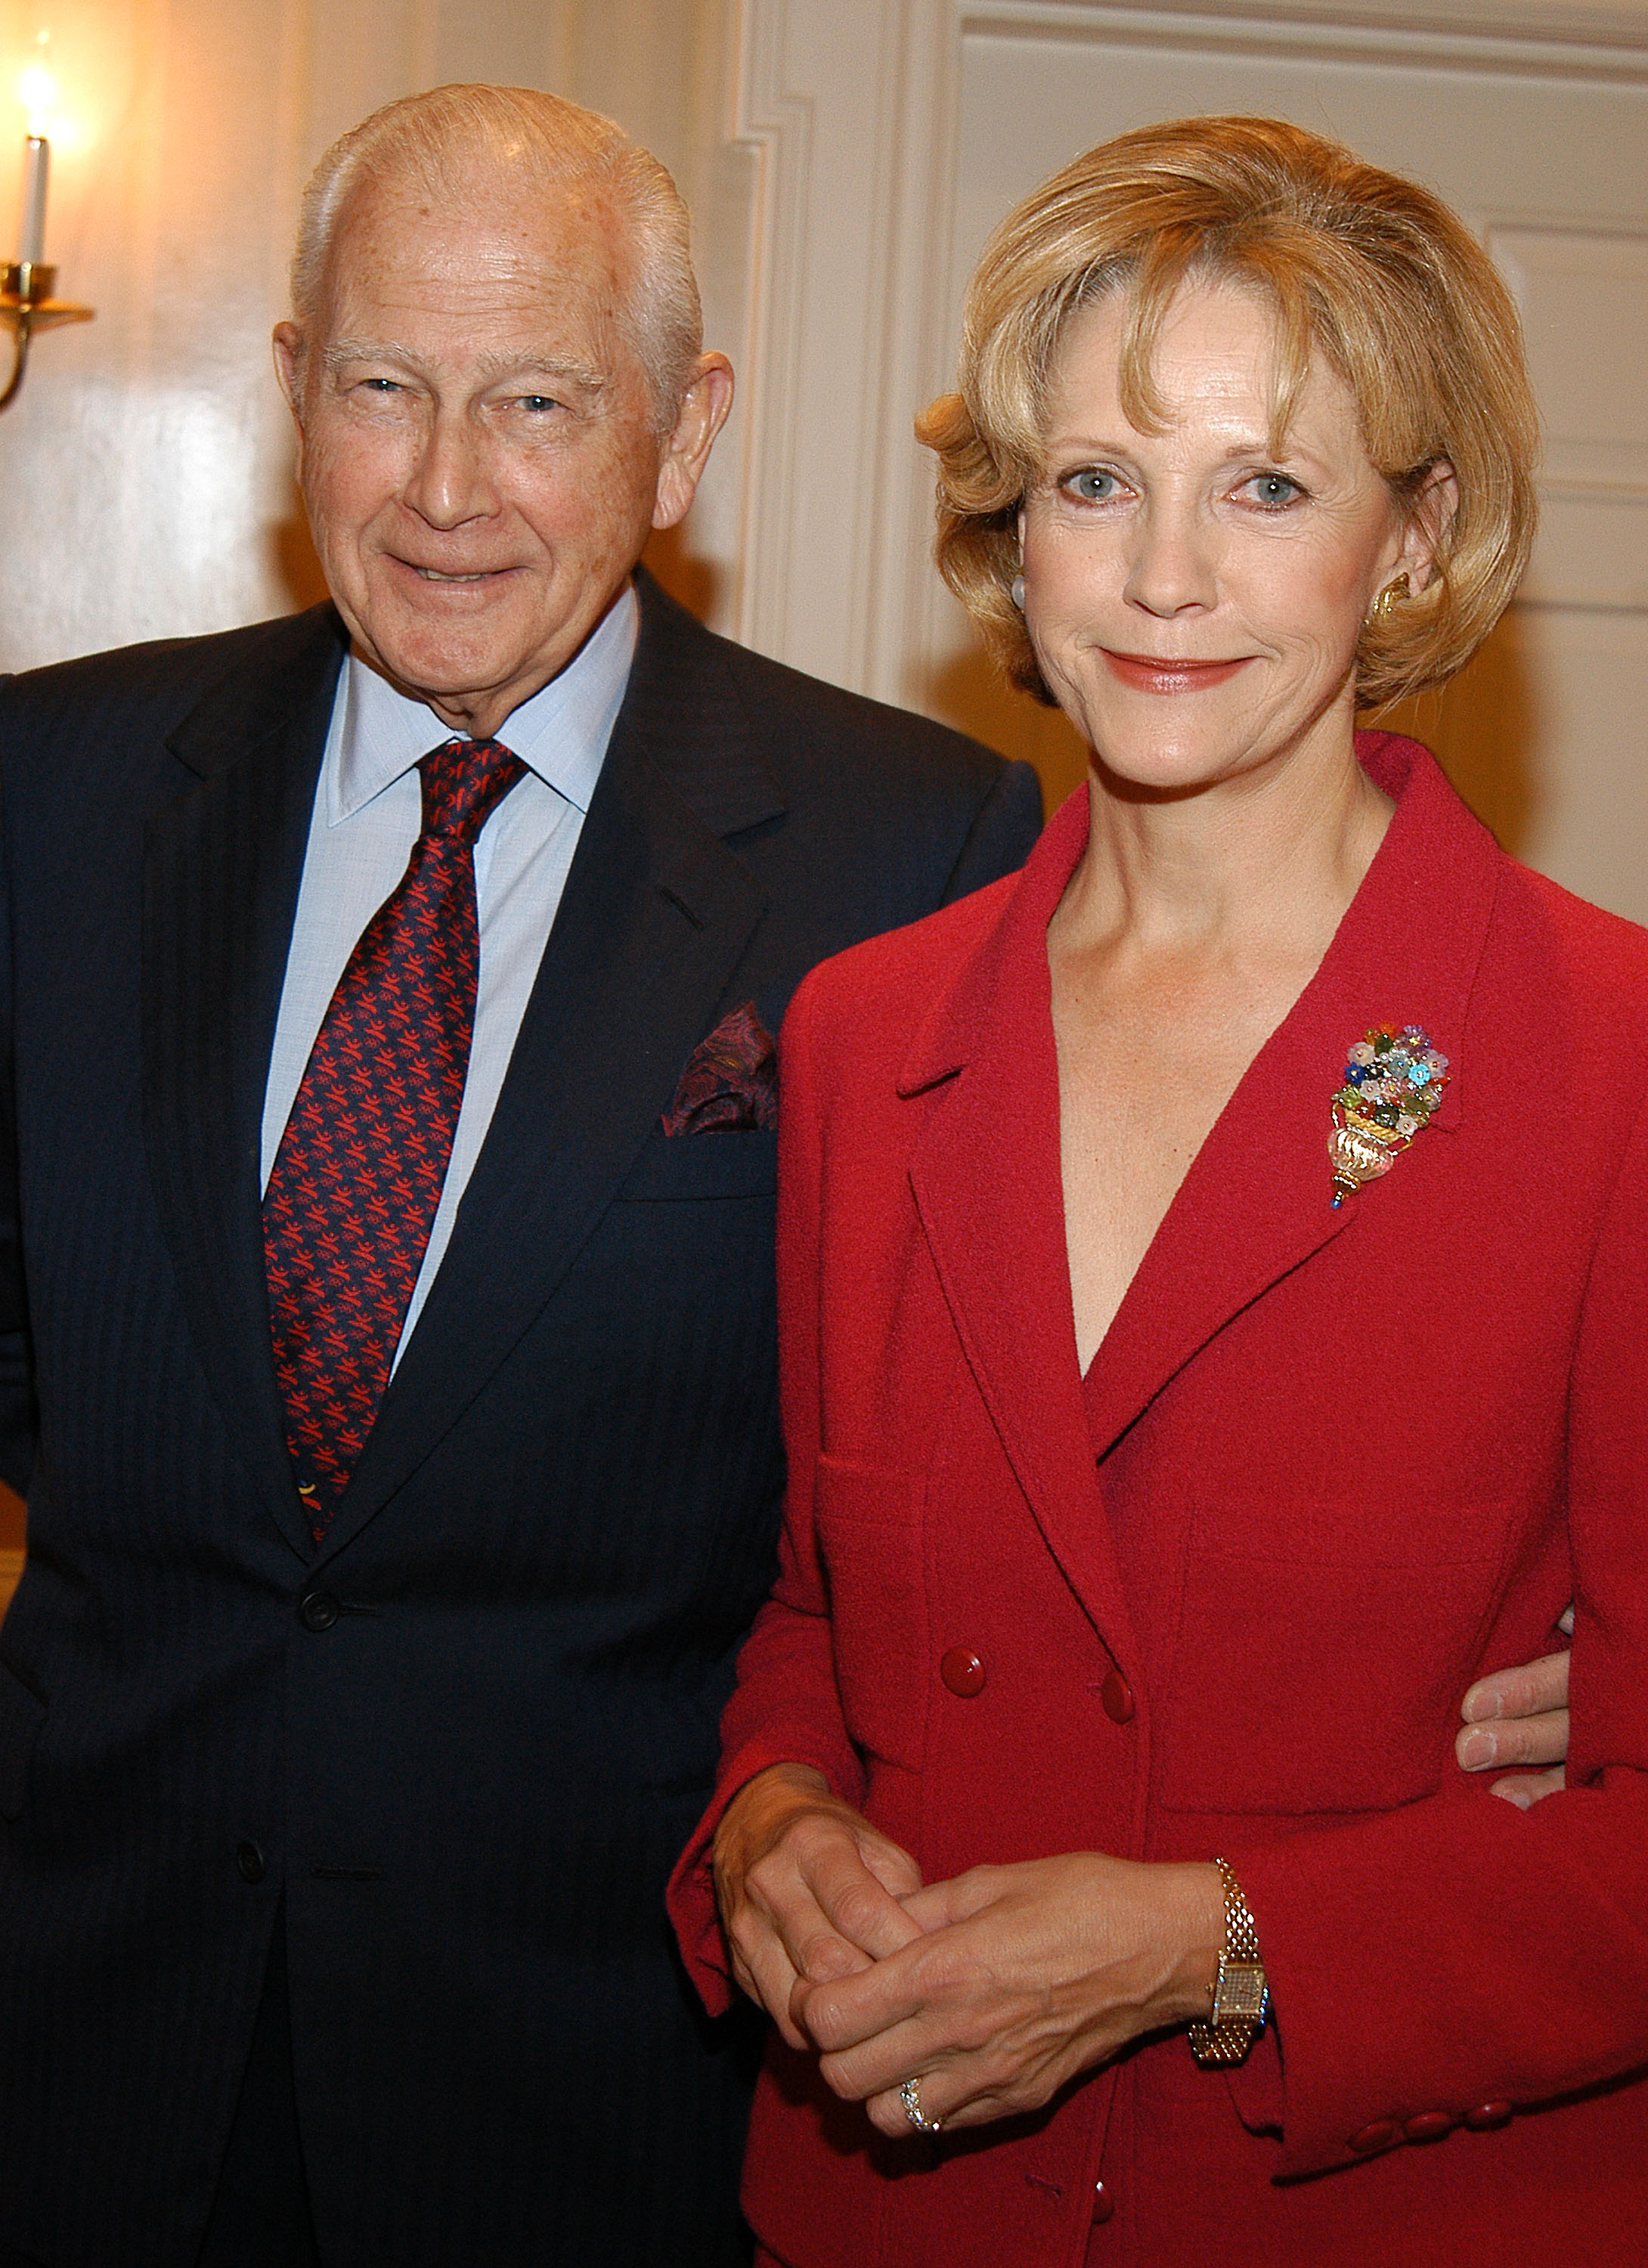 Rupert and Anna Murdoch - they are rumored to have one of the most expensive divorces in Hollywood